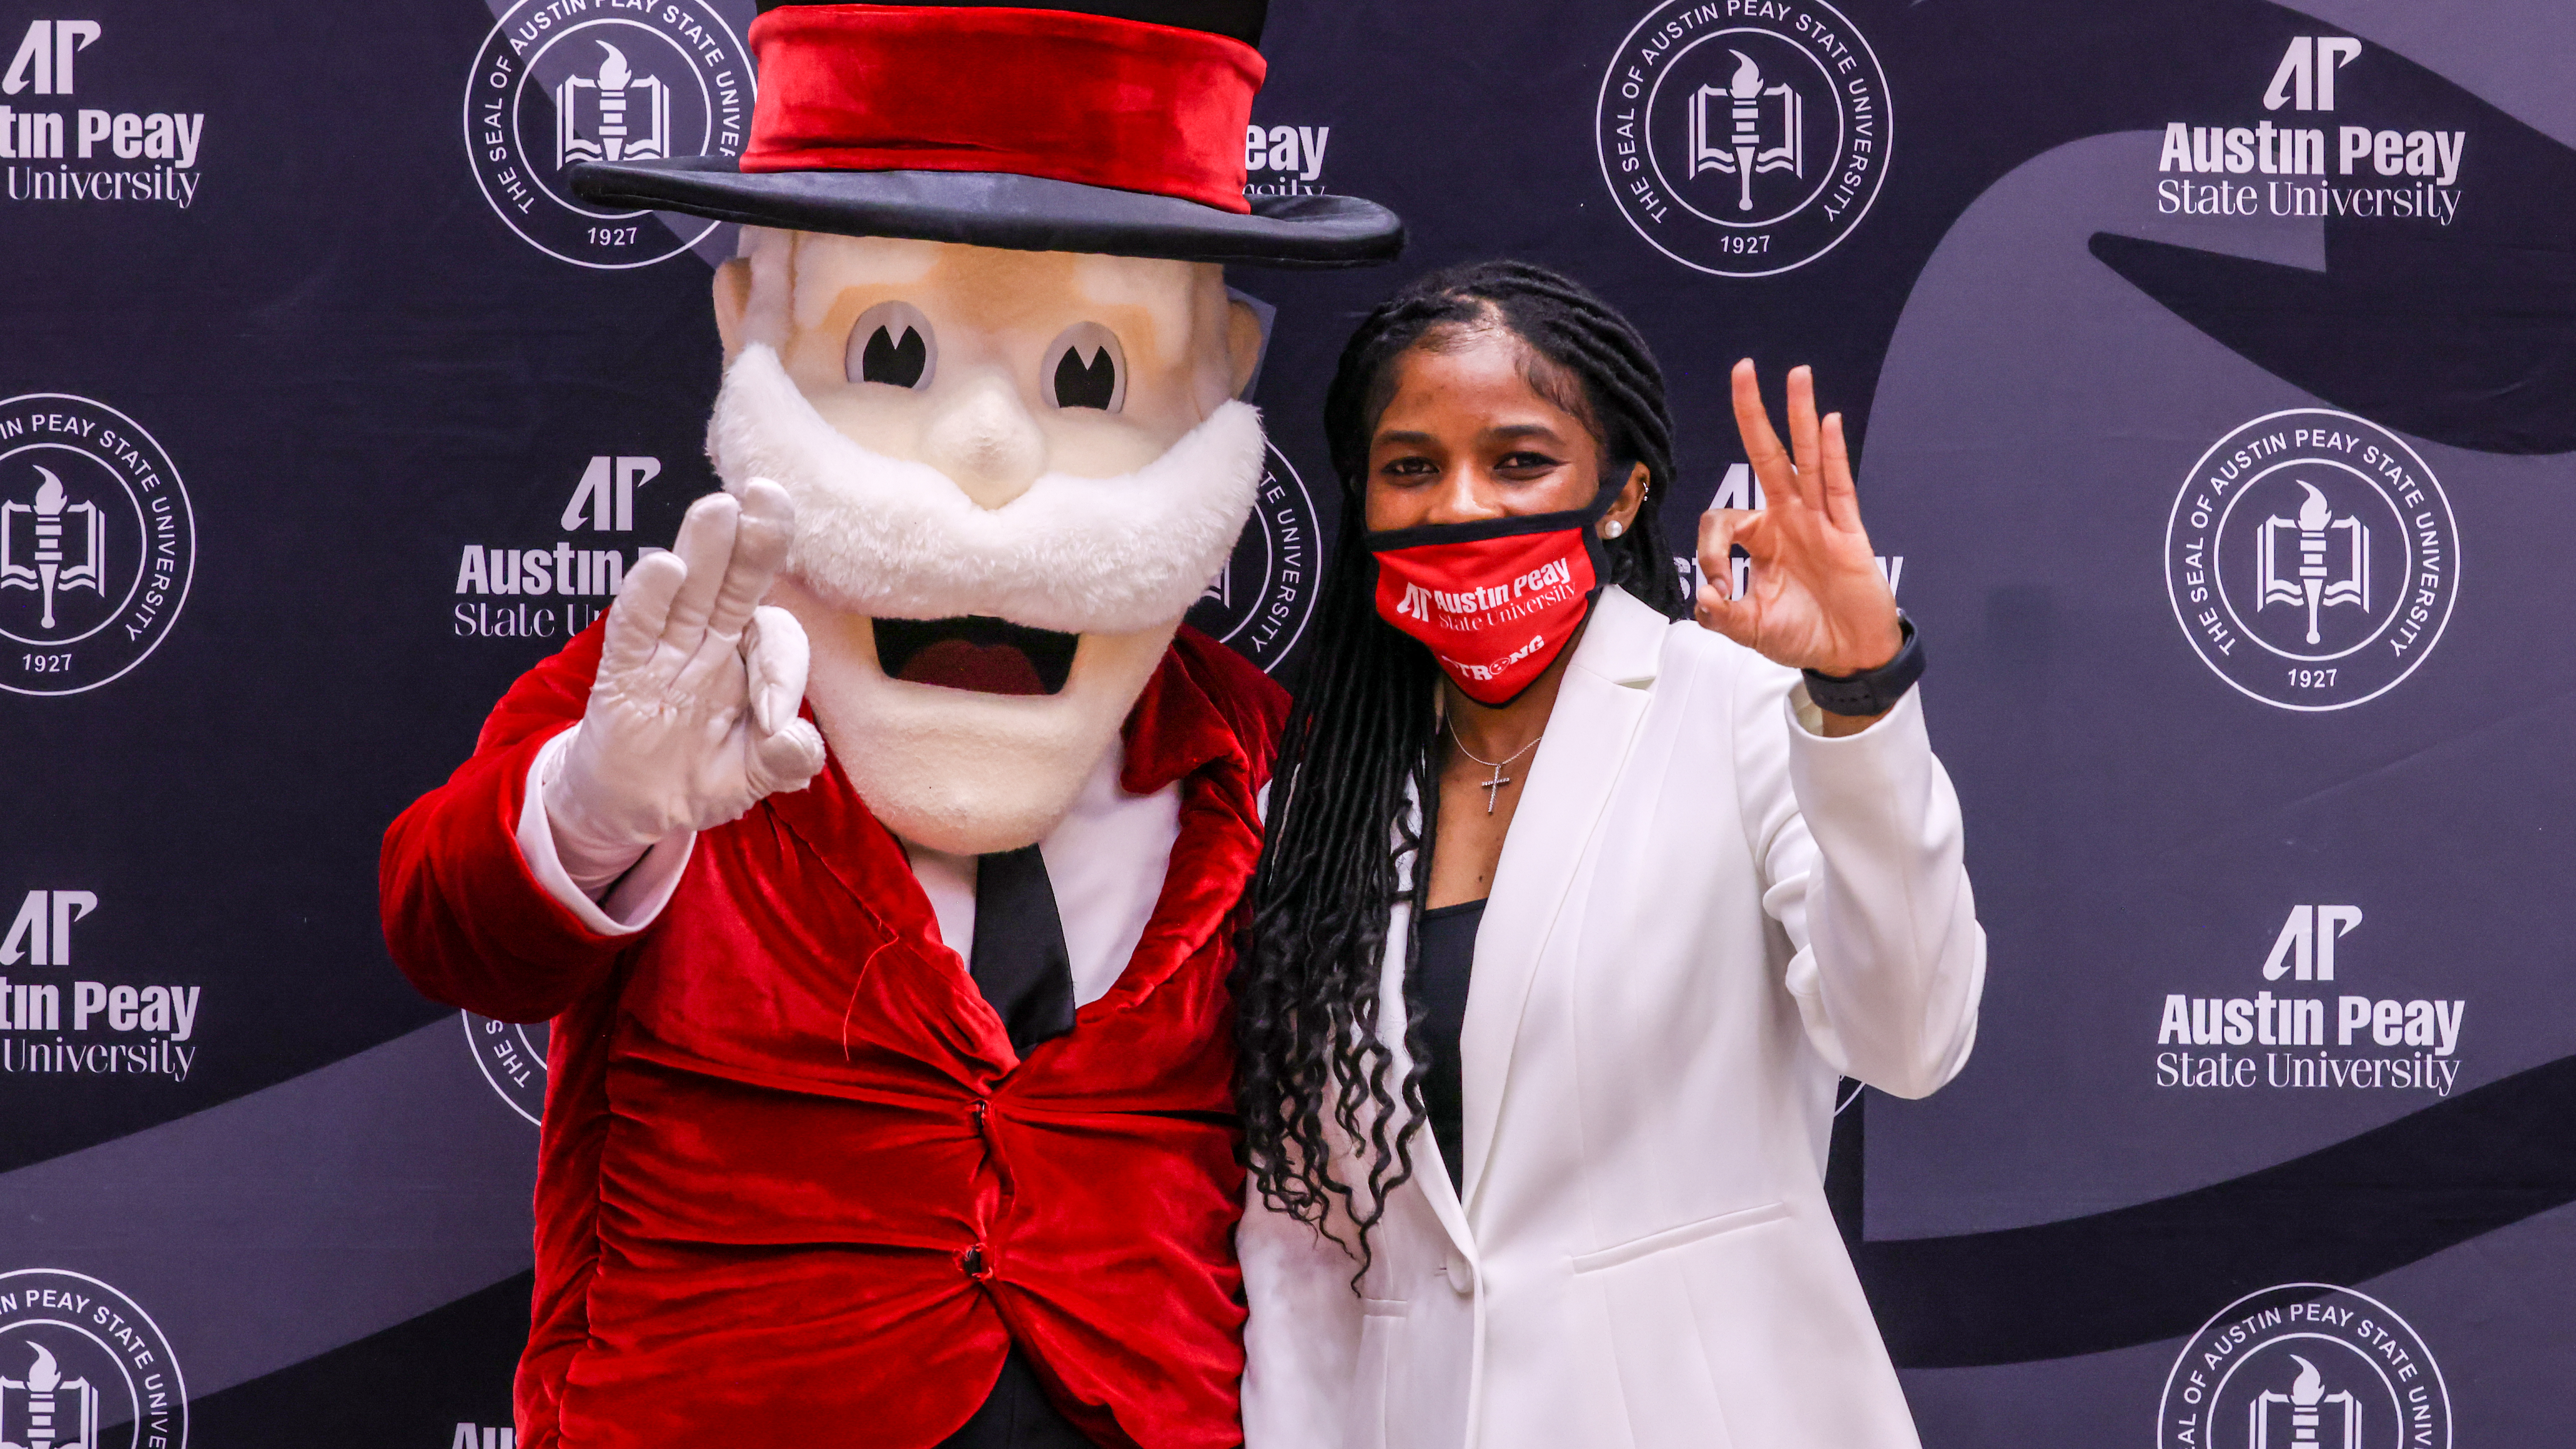 Brittany Young poses with an APSU mascot during her introductory press conference. ERIC ELLIOT | APSU ATHLETICS